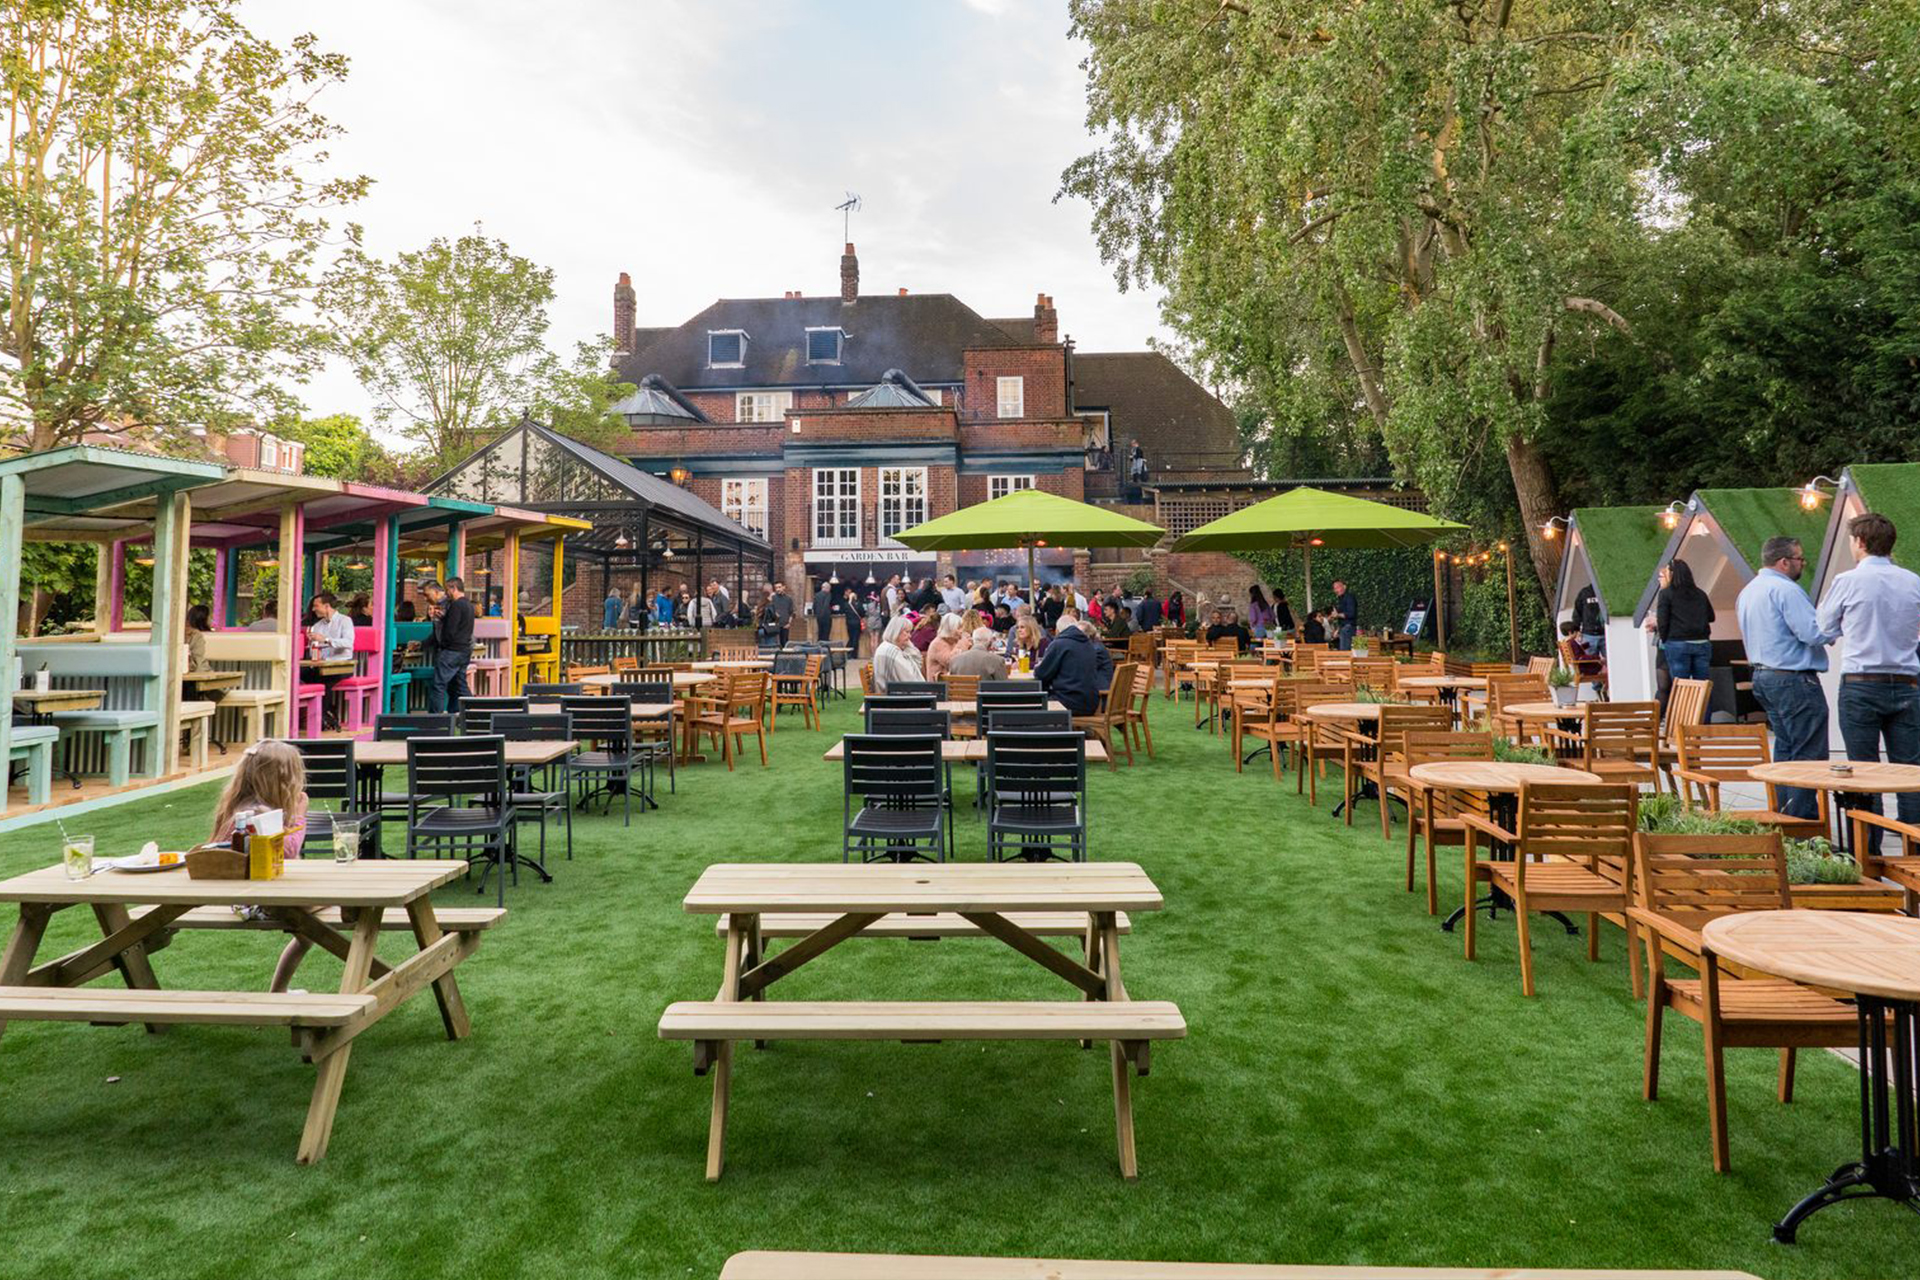 A grass beer garden with picnic tables at a London pub